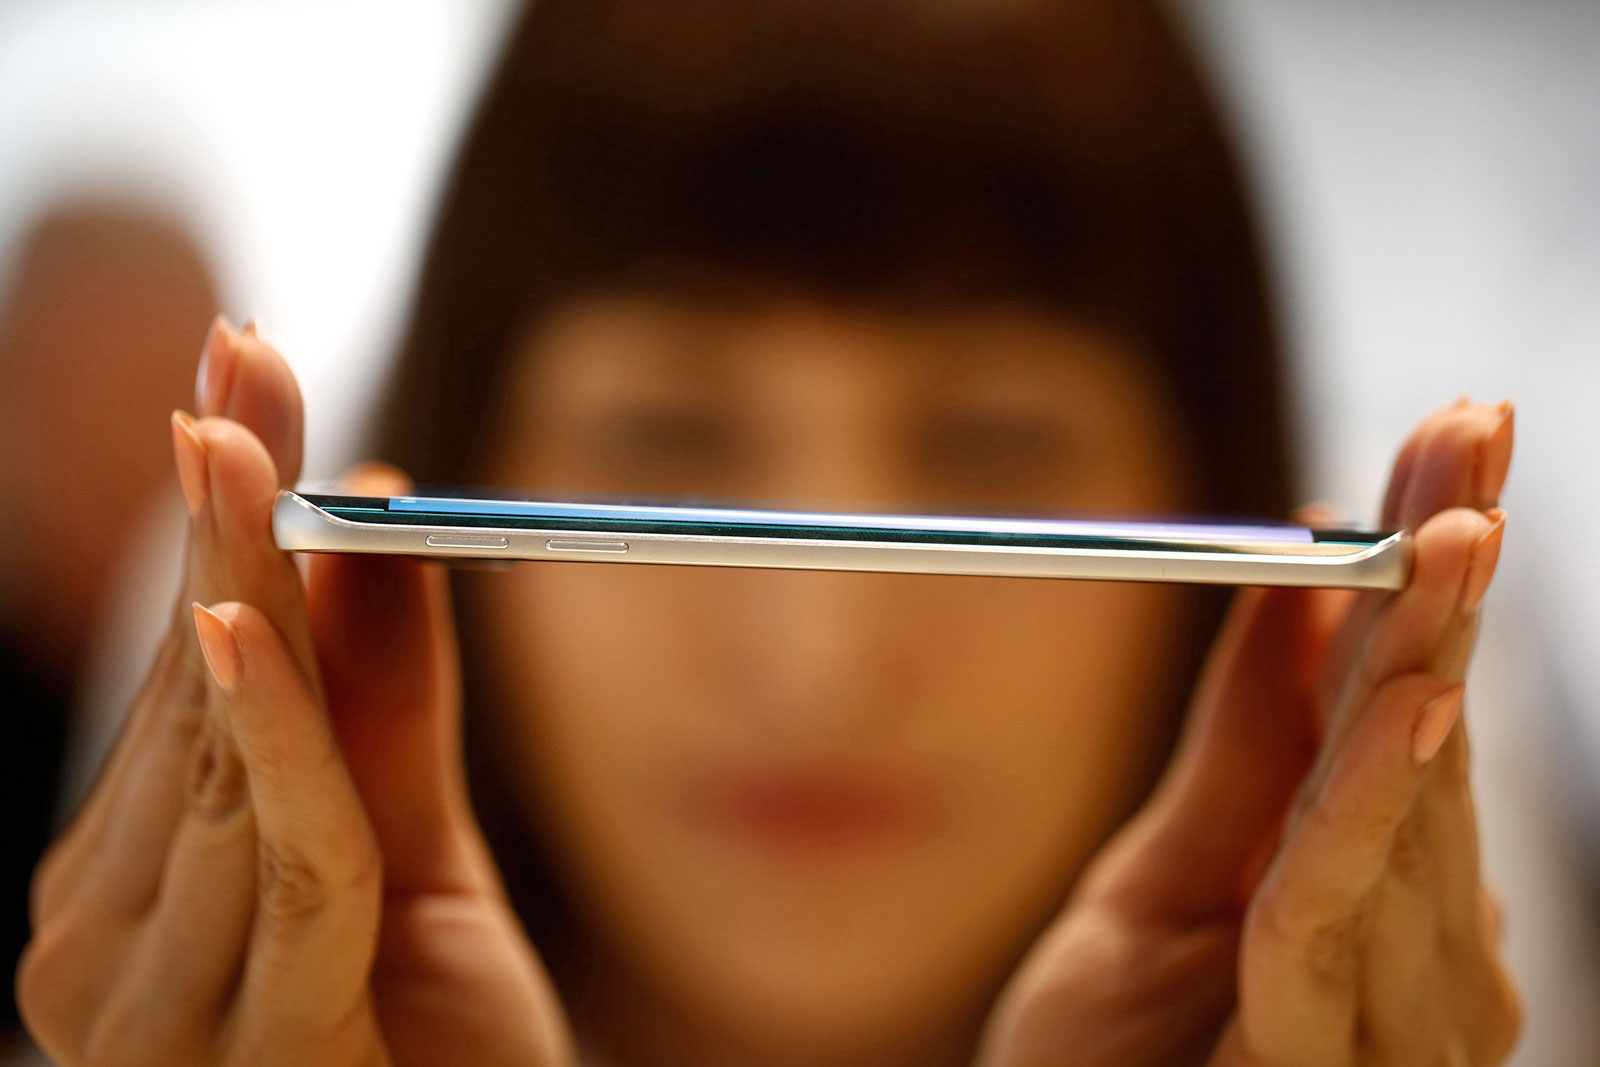 An employee shows the curved screen of a new Galaxy S6 Edge smartphone at a Samsung Electronics news conference ahead of the Mobile World Congress in Barcelona